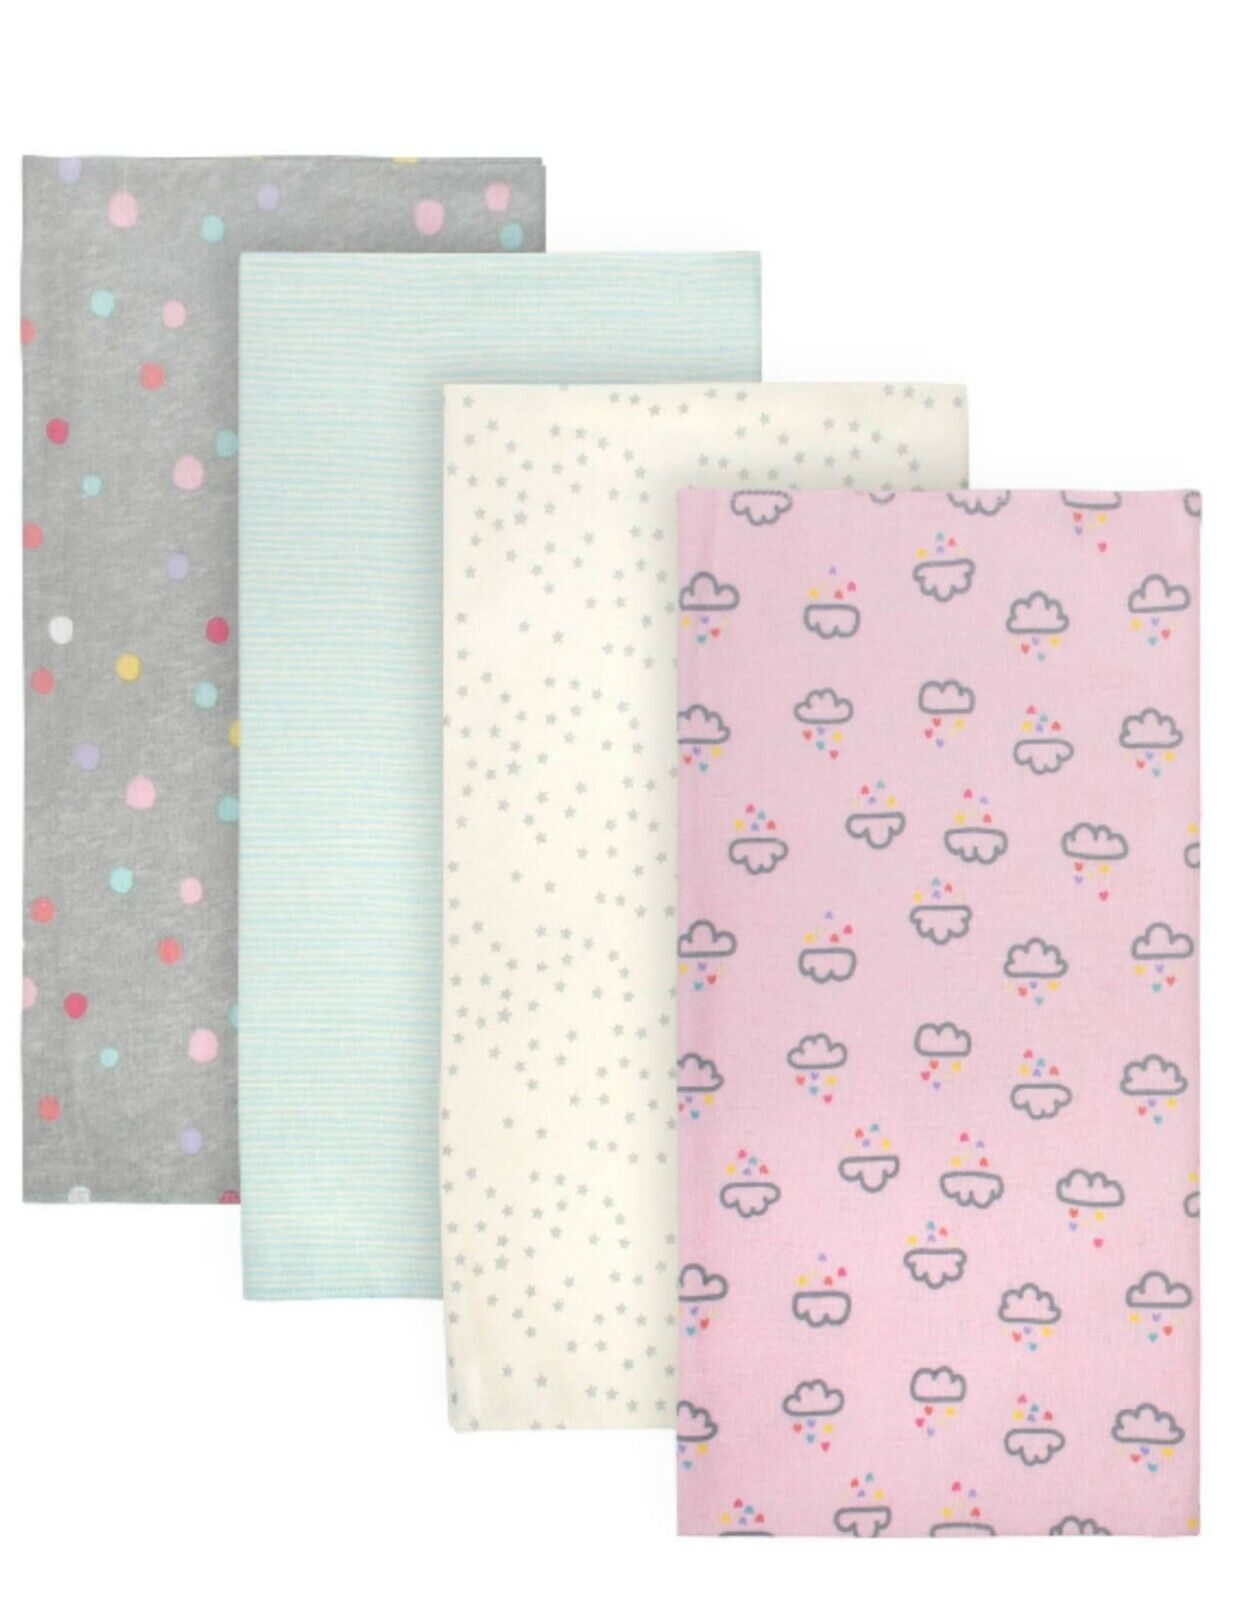 Gerber Baby Girl Flannel Receiving Blankets  - Pink Gray Aqu